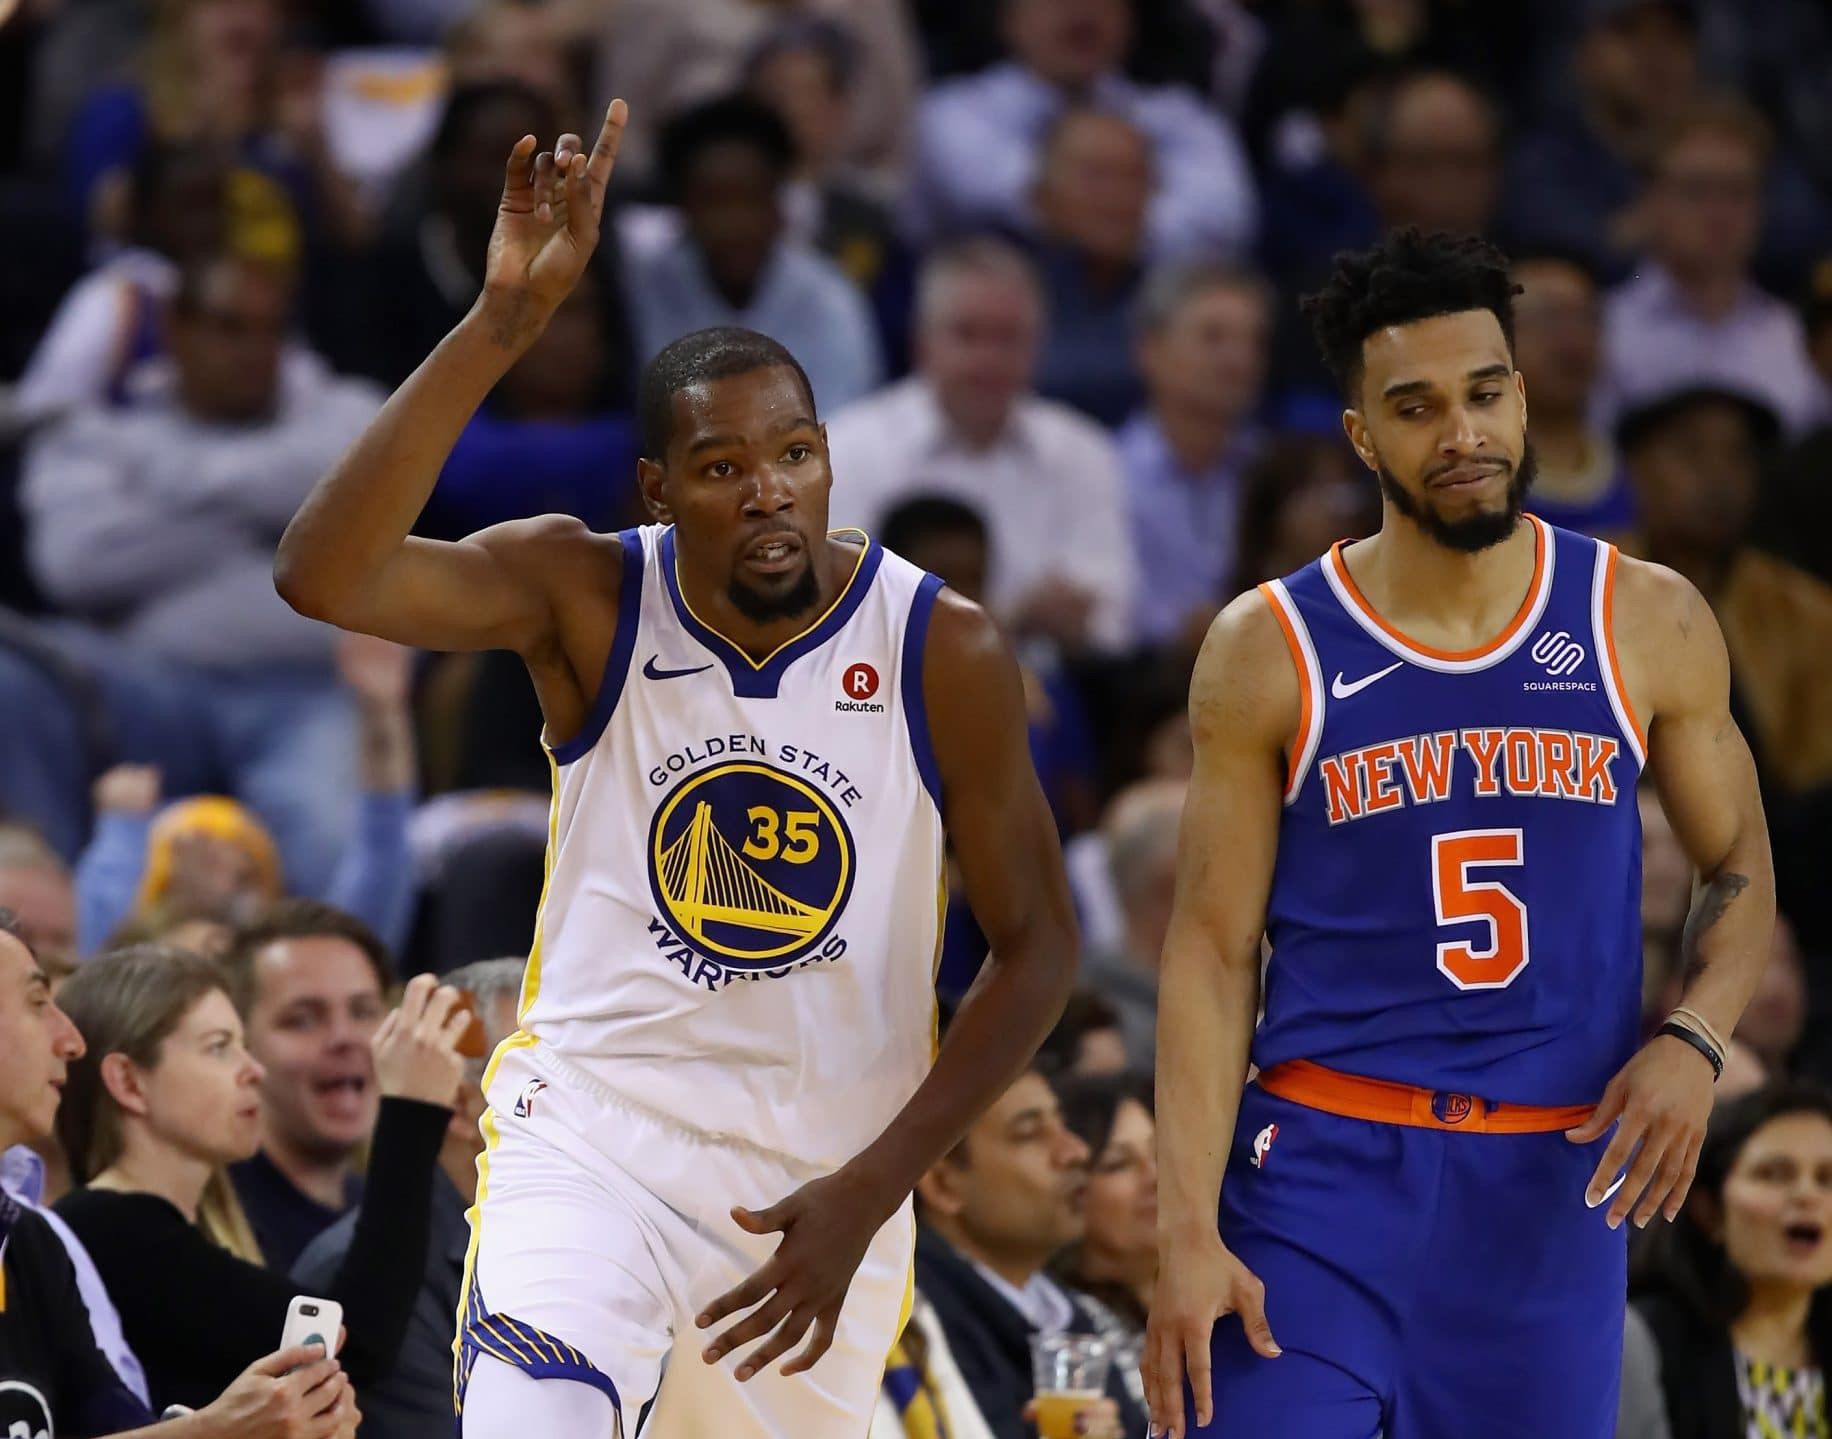 Dự đoán NBA: New York Knicks vs Golden State Warriors - Ảnh 3.